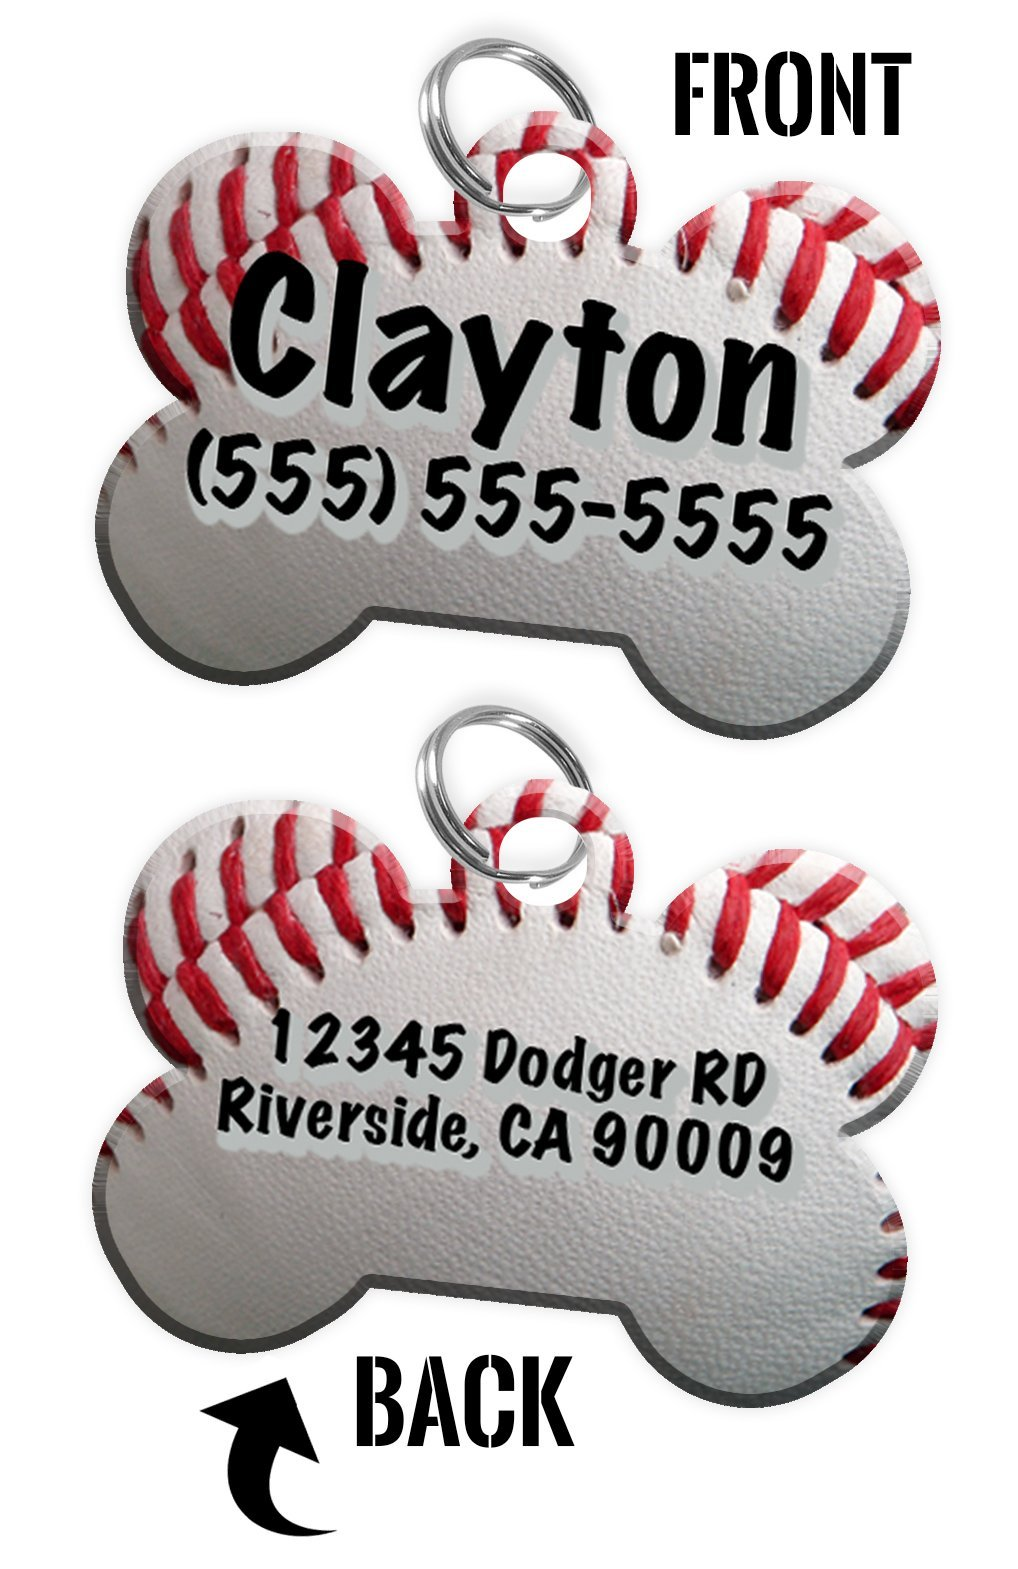 Double-Sided Baseball Dog tag personalized for pets with Name & Contact Number (Front) & address or other text (Back) [Multiple Font Choices] [USA COMPANY]